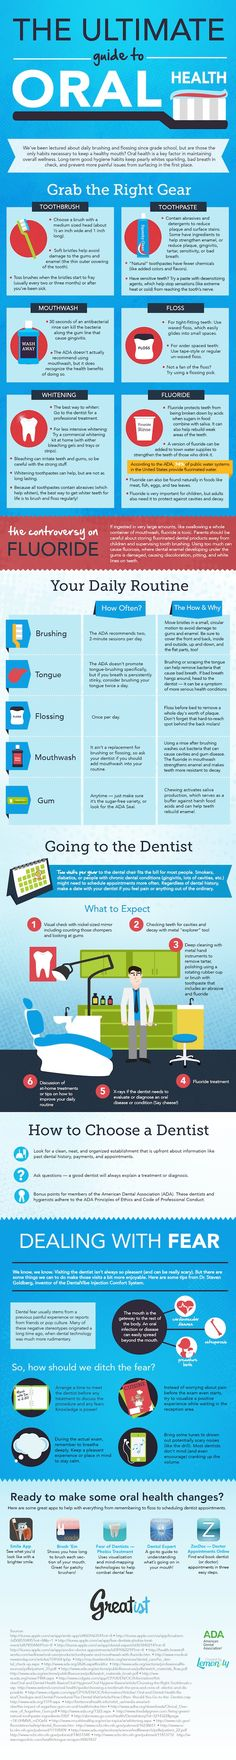 The-Ultimate-Guide-to-Oral-Health-copy